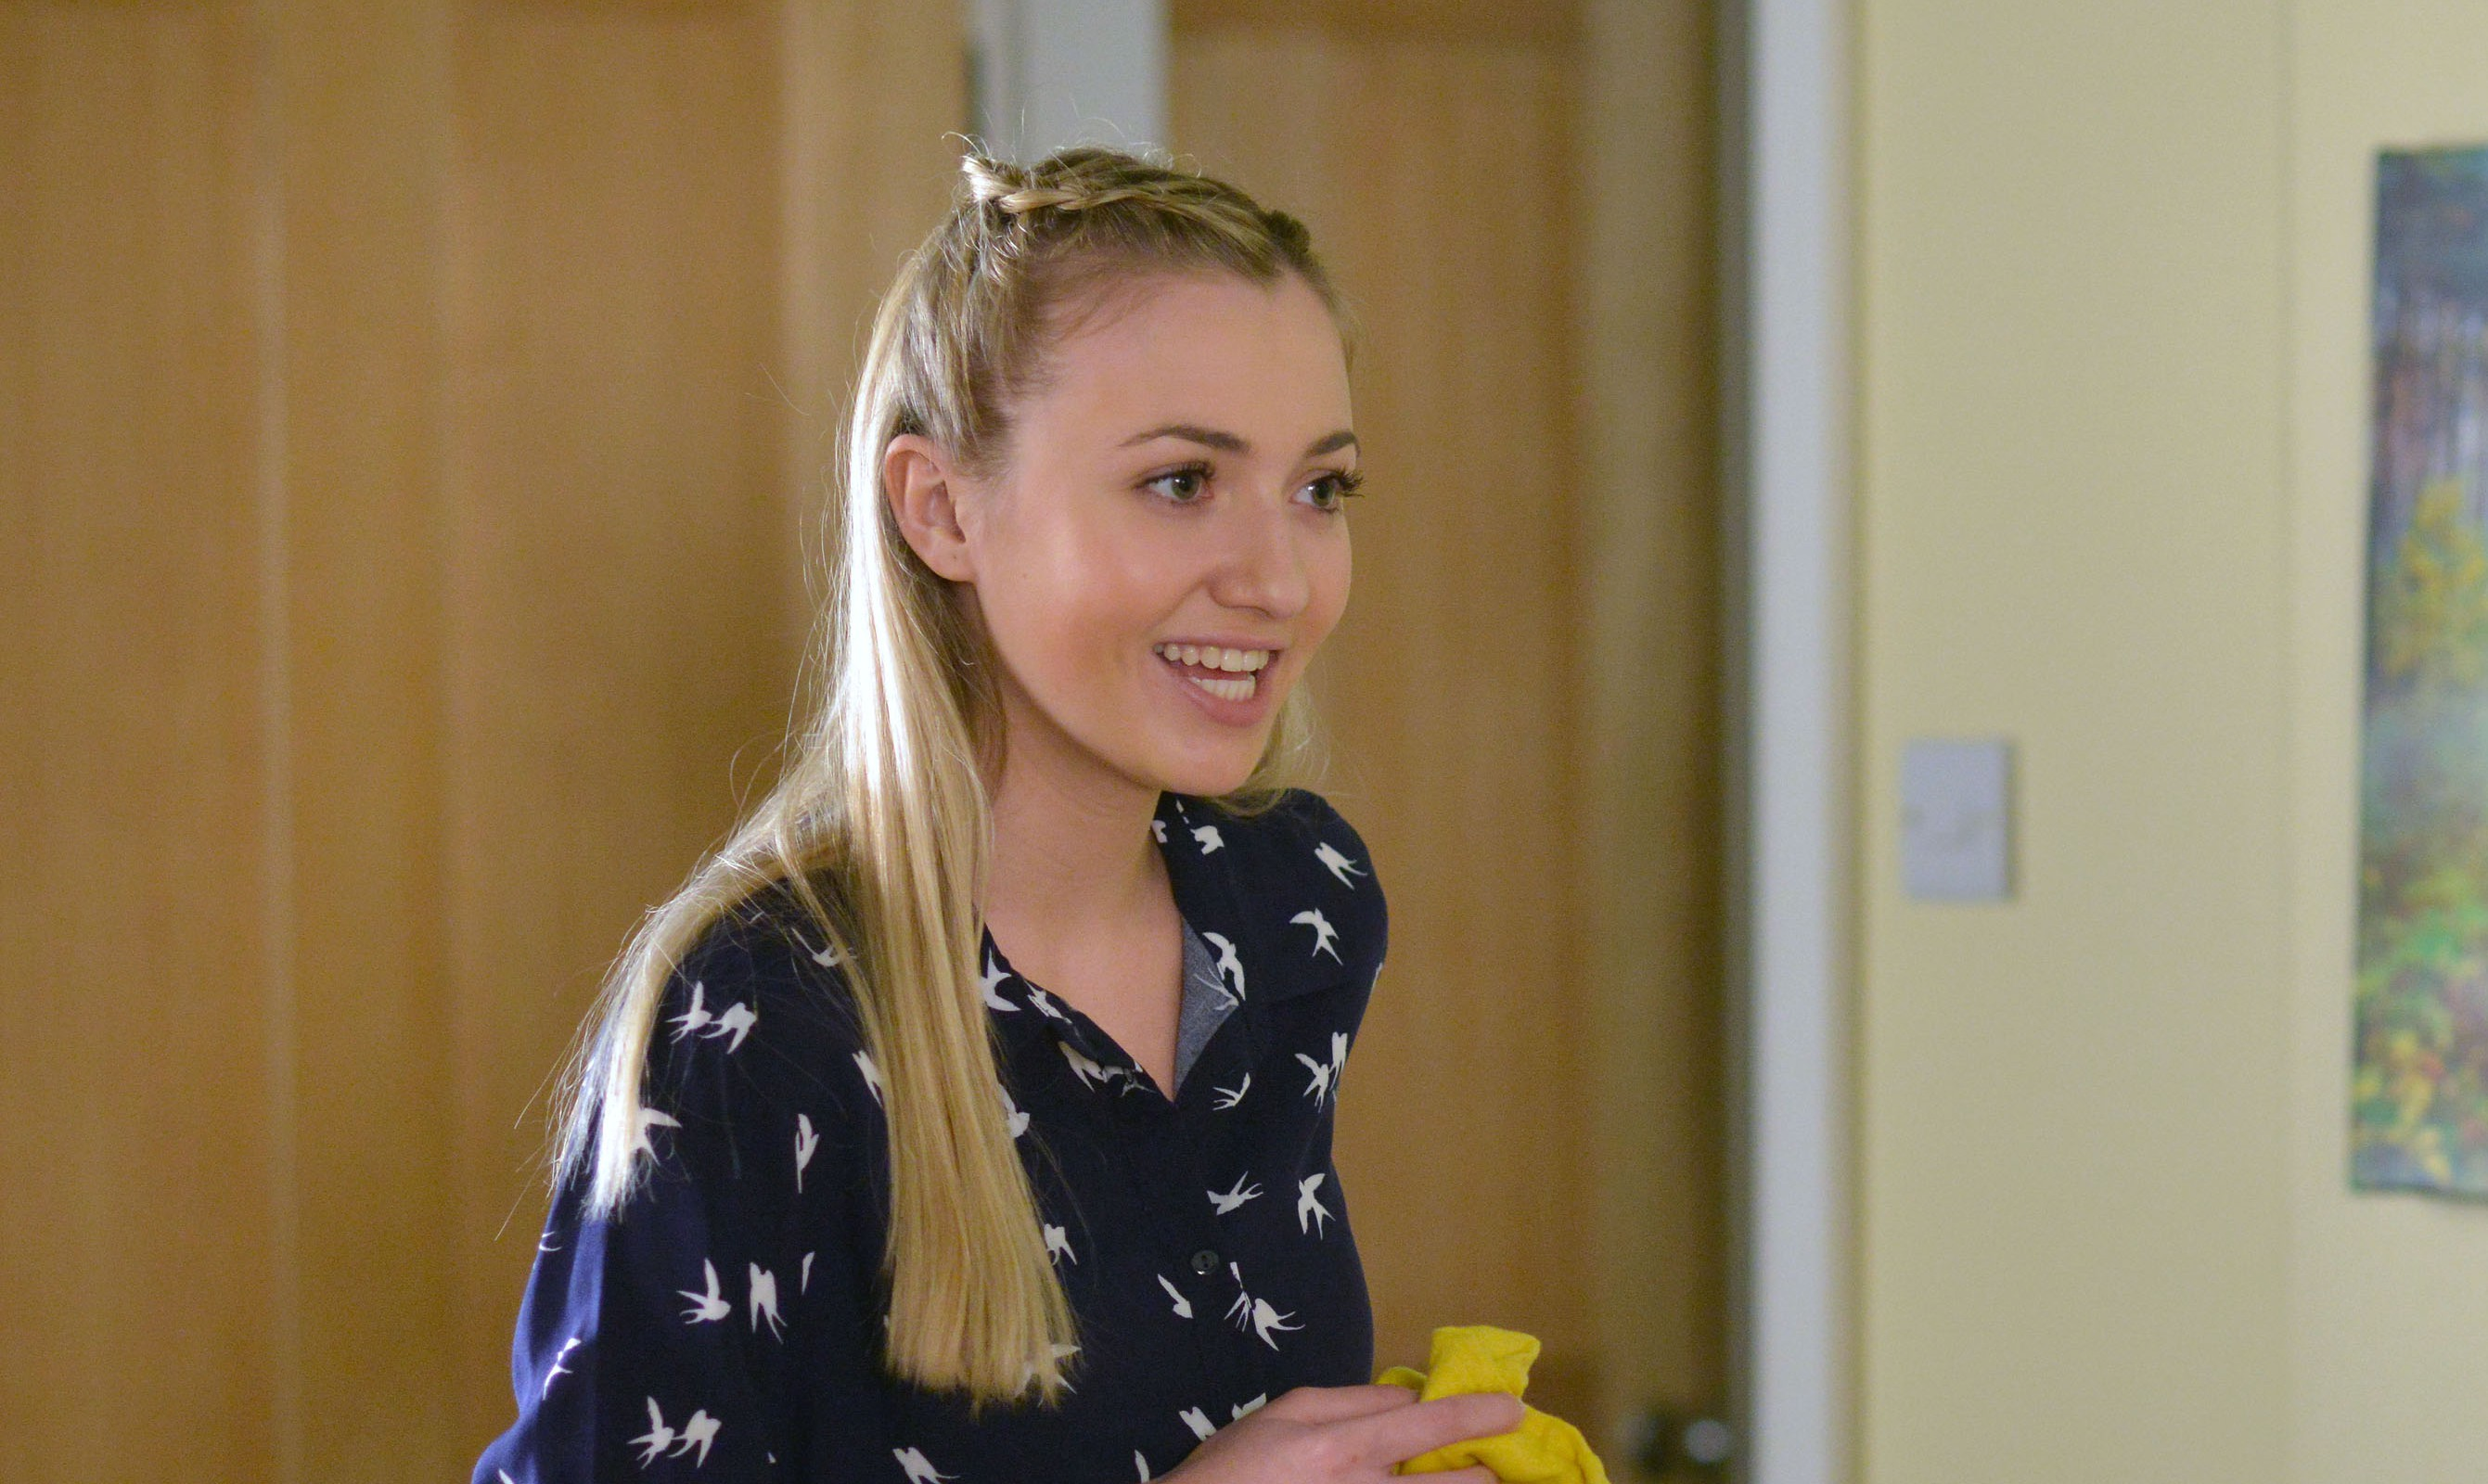 EastEnders spoilers: Louise Mitchell plots to destroy Ben's life after scolding spoon-gate